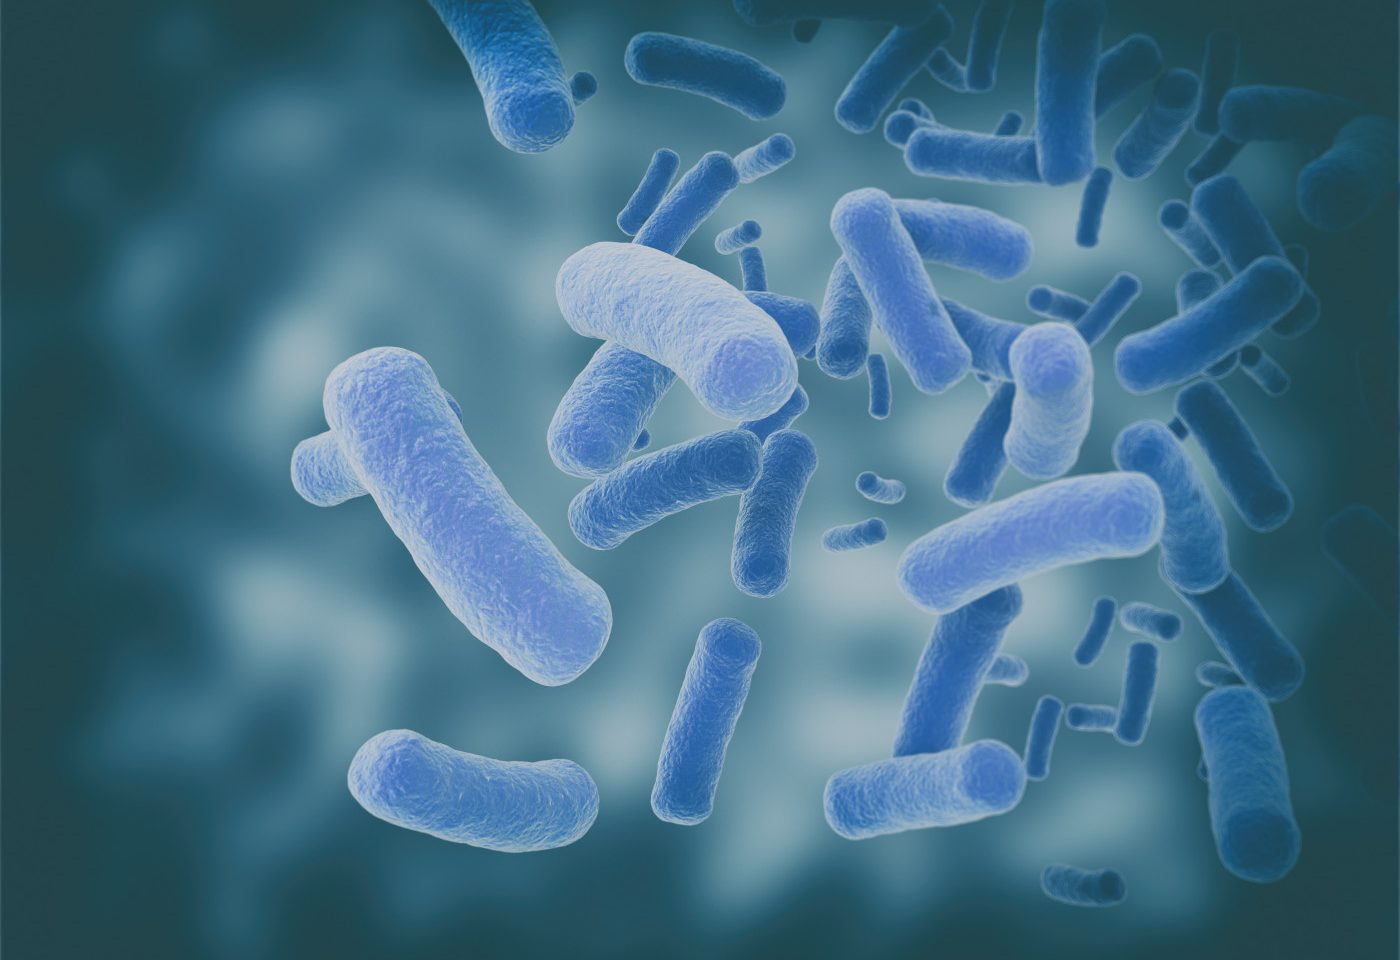 ALS Study Finds Bacteria, Fungi in Central Nervous System of